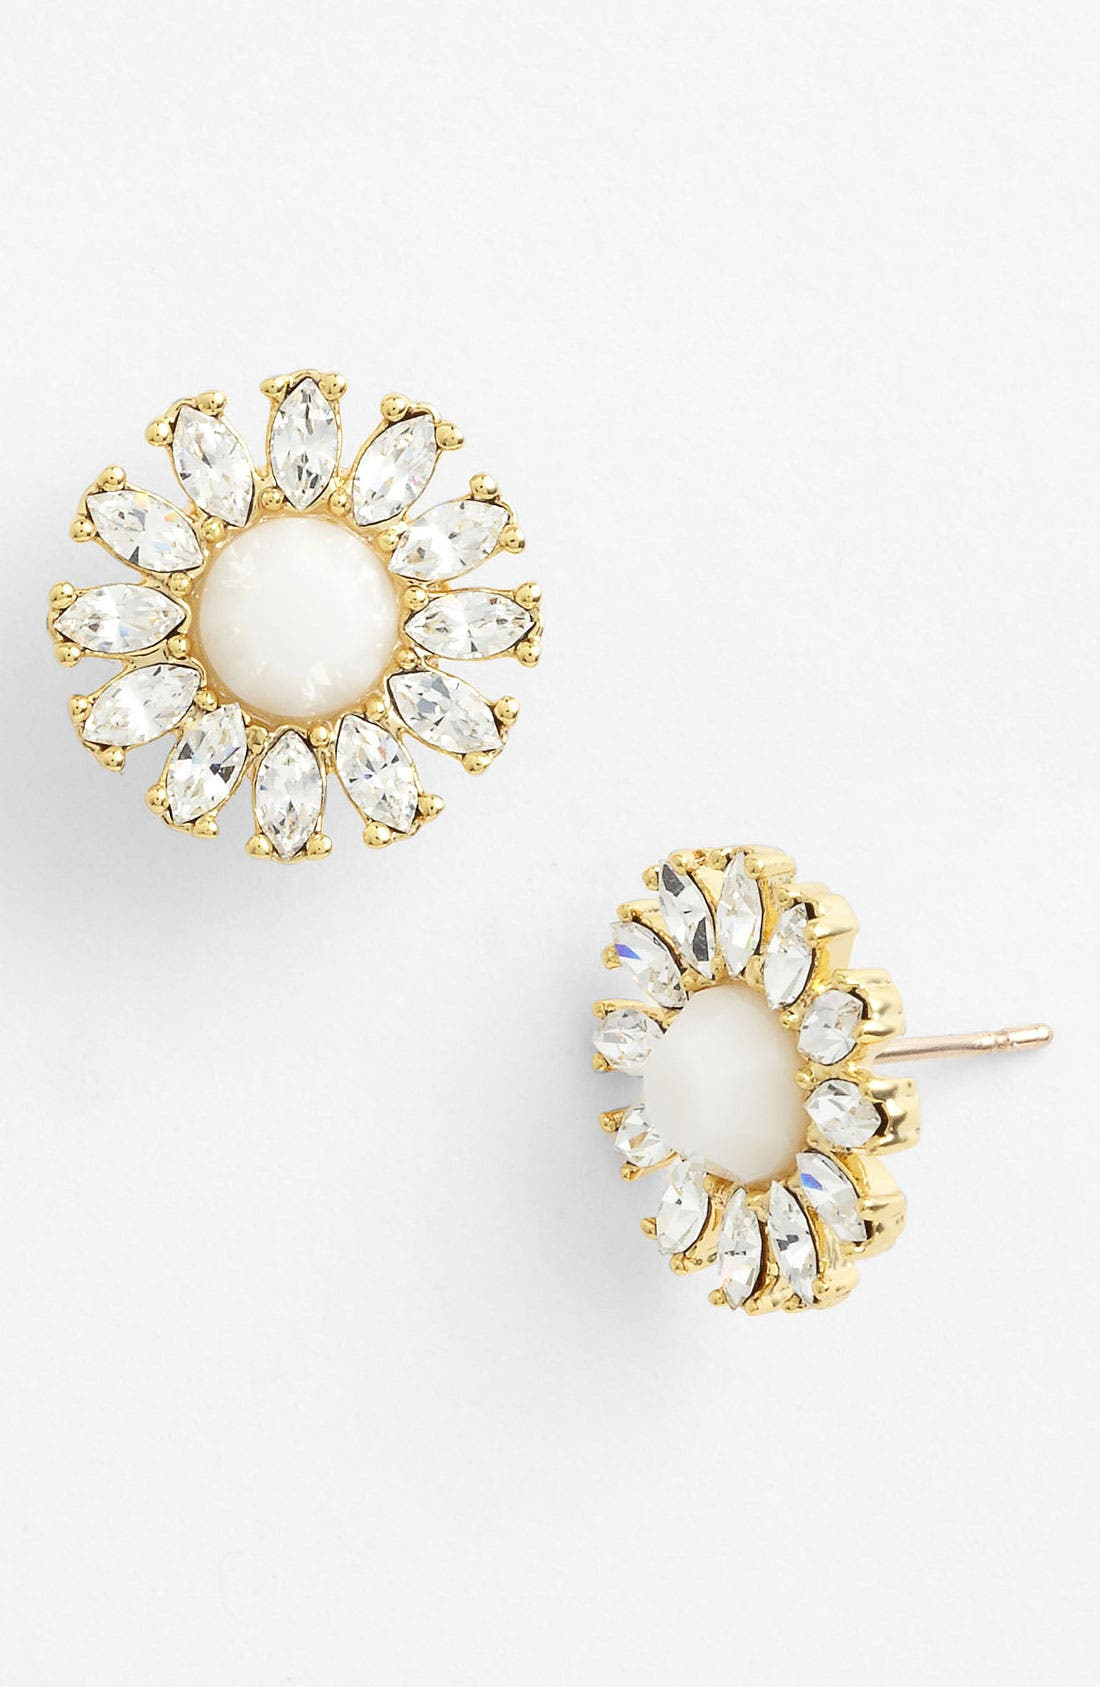 Alternate Image 1 Selected - kate spade new york 'estate garden' stud earrings